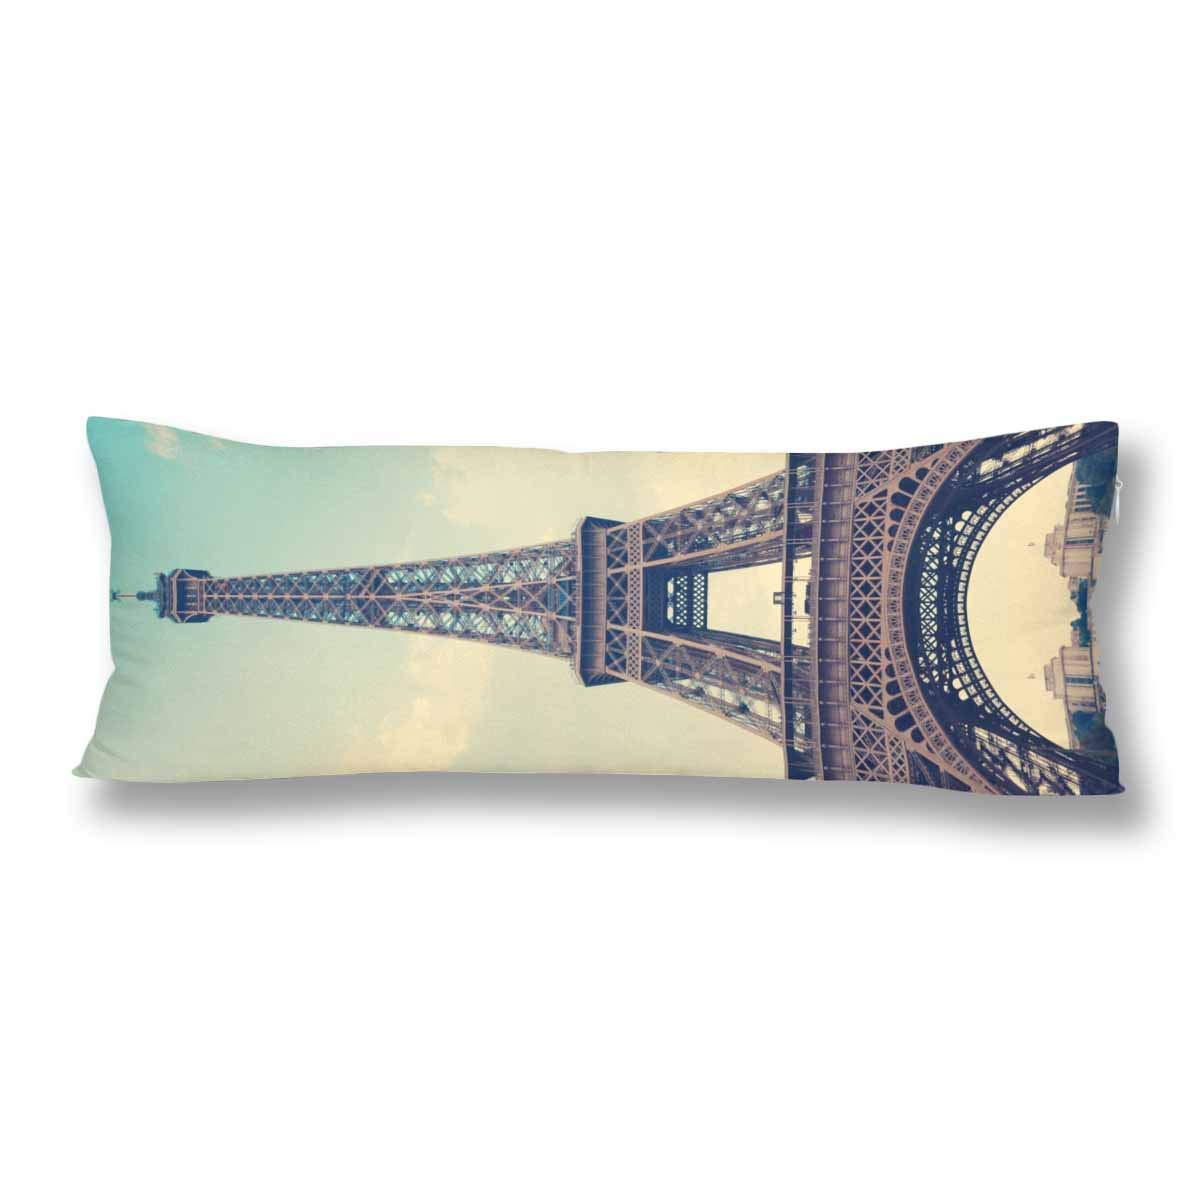 ABPHOTO Vintage Eiffel Tower Blue Sky Body Pillow Covers Case Protector 20x60 inch